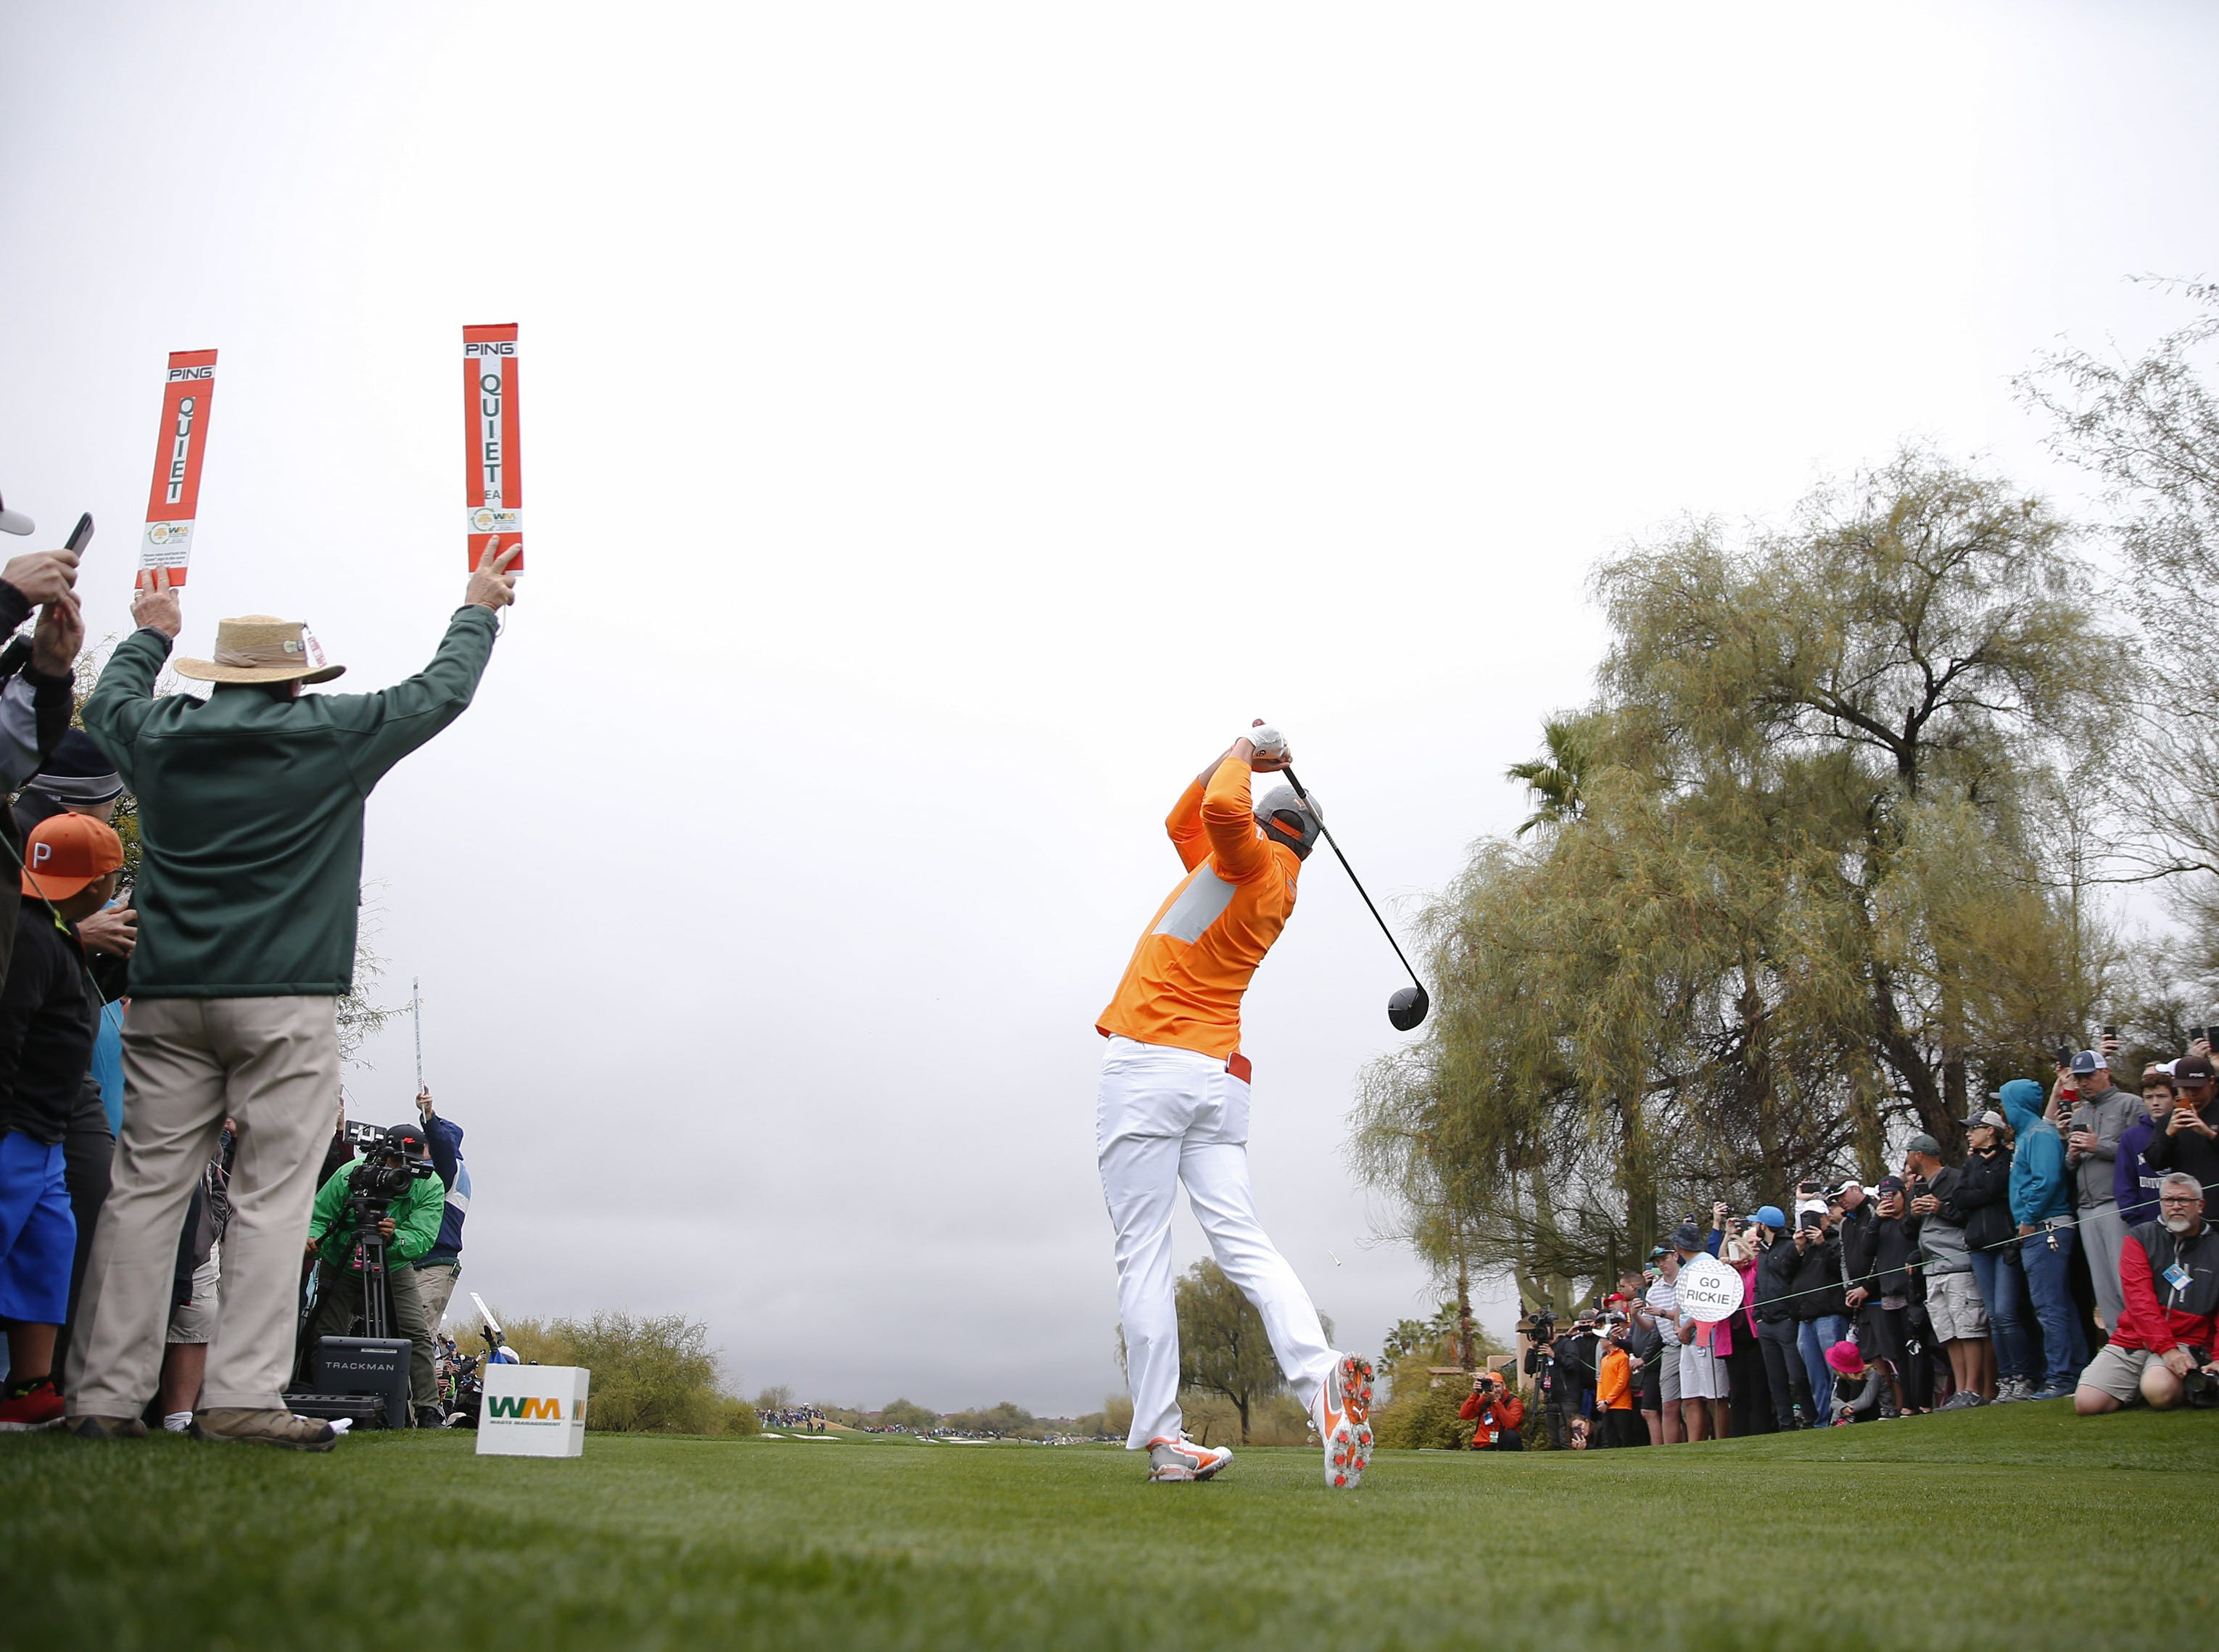 Rickie Fowler hits his tee shot on the third hole during the final round of the Waste Management Phoenix Open at the TPC Scottsdale Feb. 3, 2019.